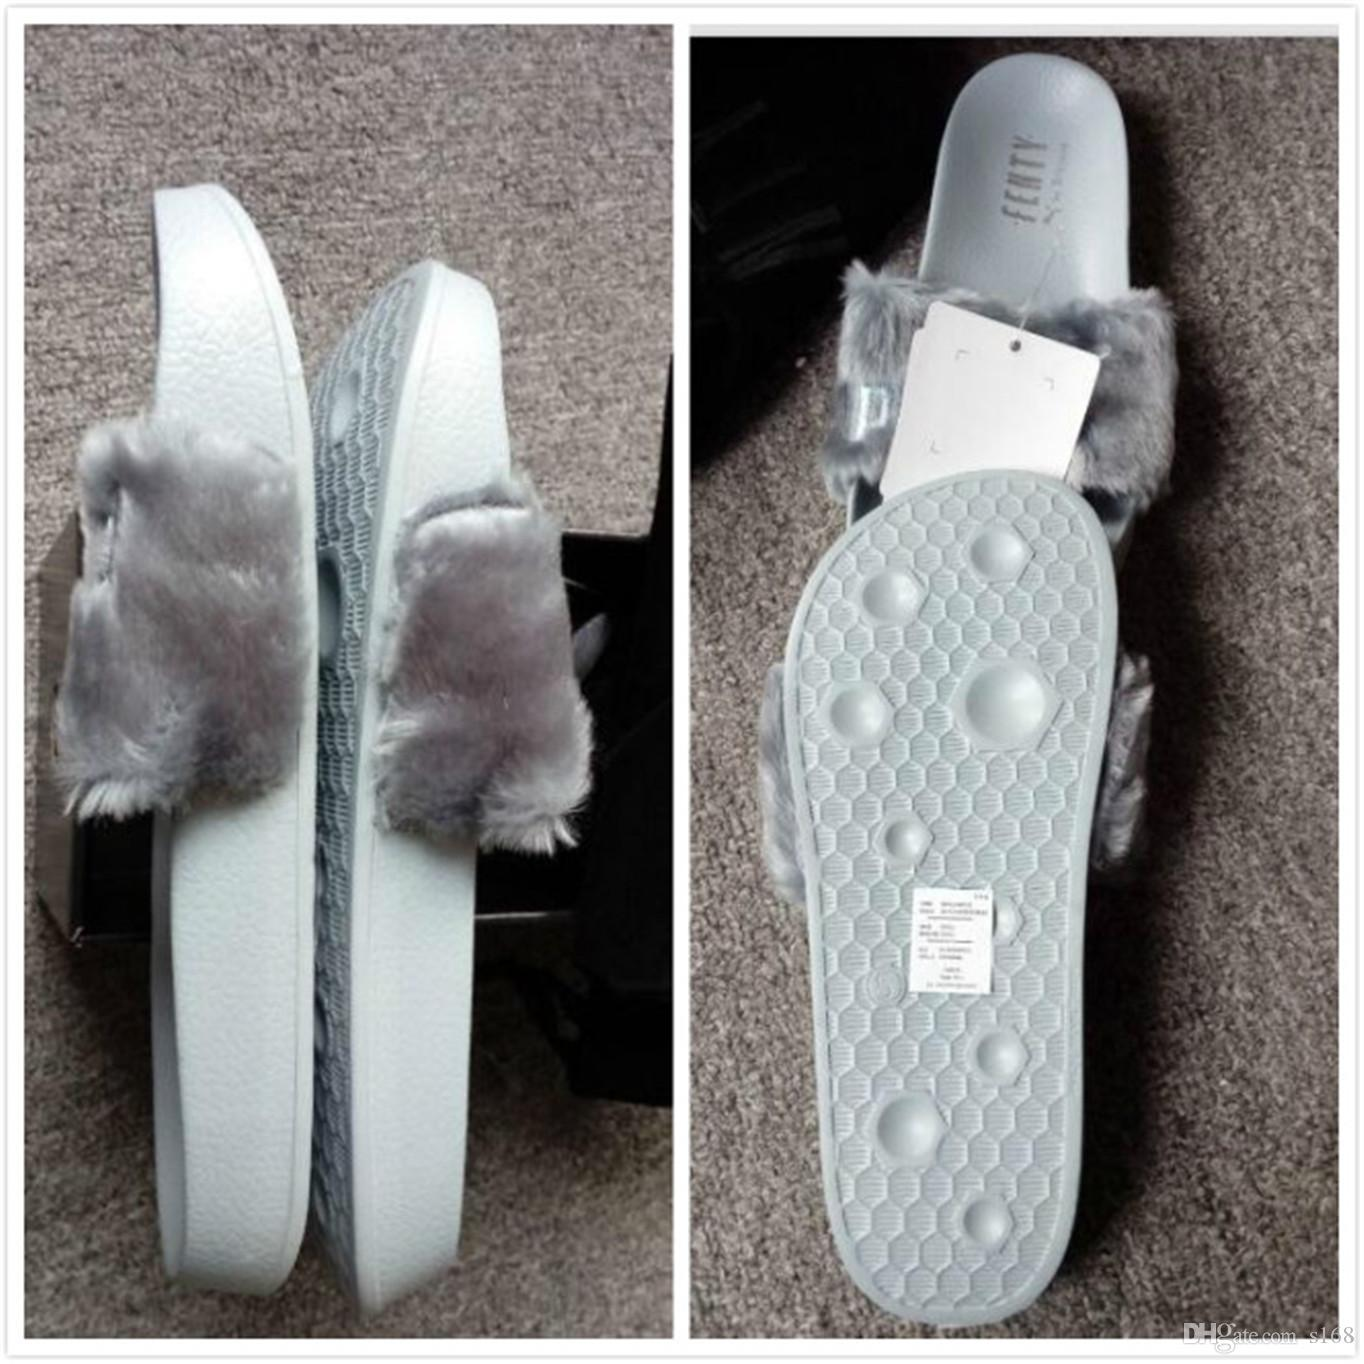 8cd06490355e Dust Bags+ Box 2018 New Arrive Rihanna X L2018 Fenty Jelly Slides Slippers  Women Sandals Summer Shoes Fashion Slides Slippers Mid Calf Boots Leather  Boots ...